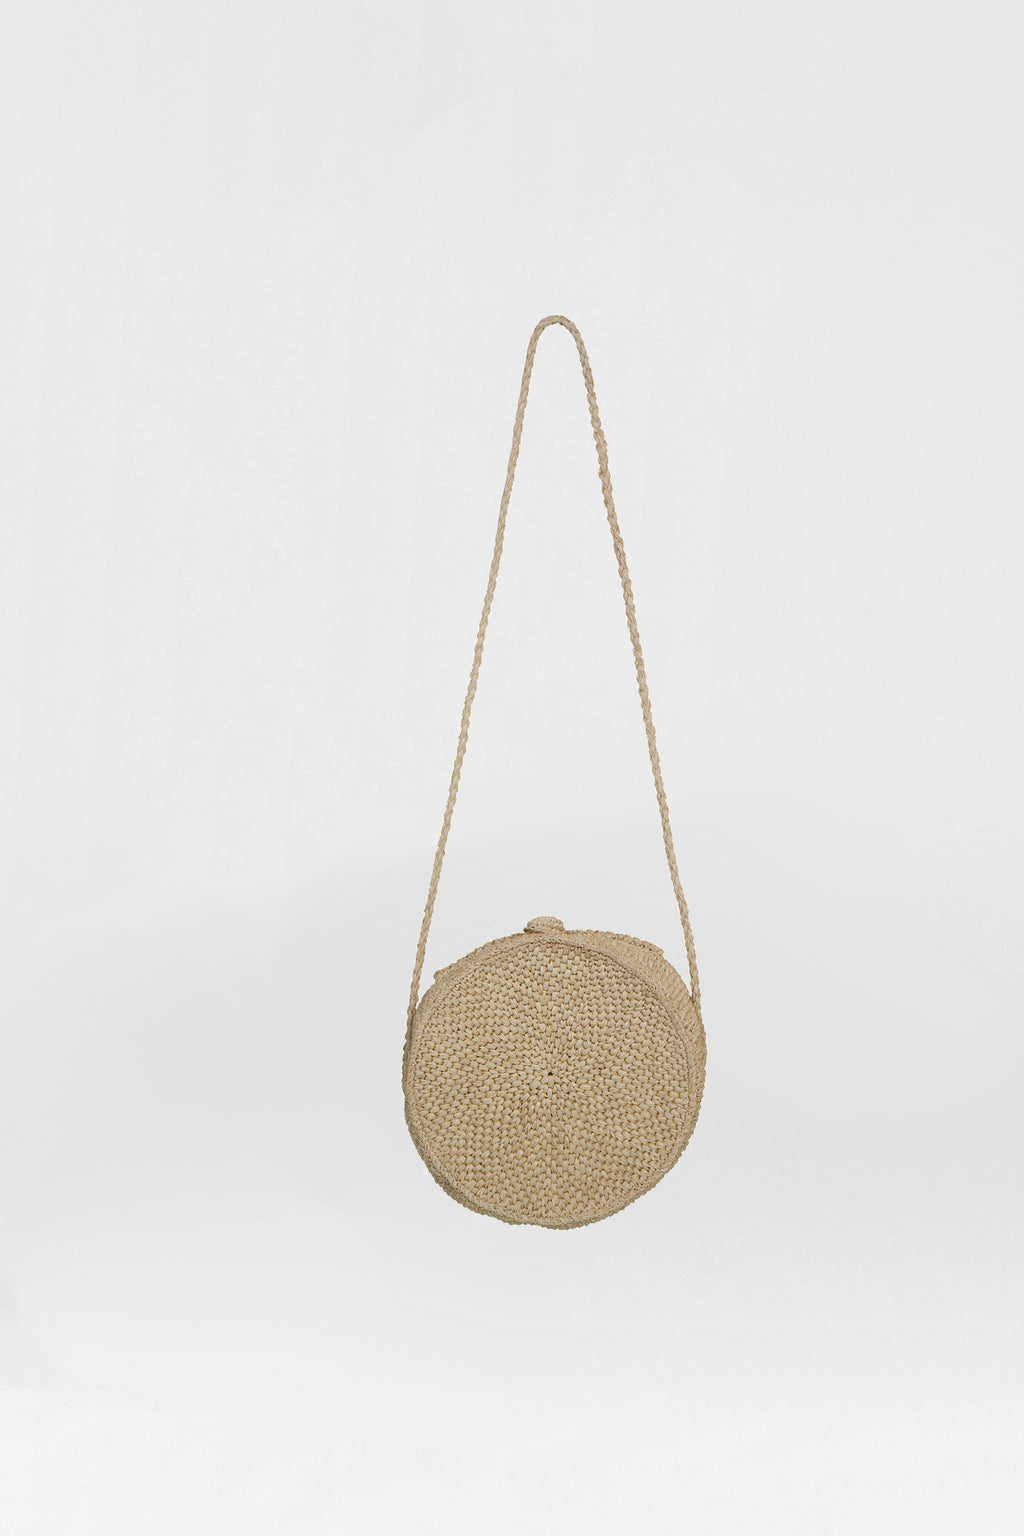 Buy Heliette Bag from MADE IN MADA at paya boutique